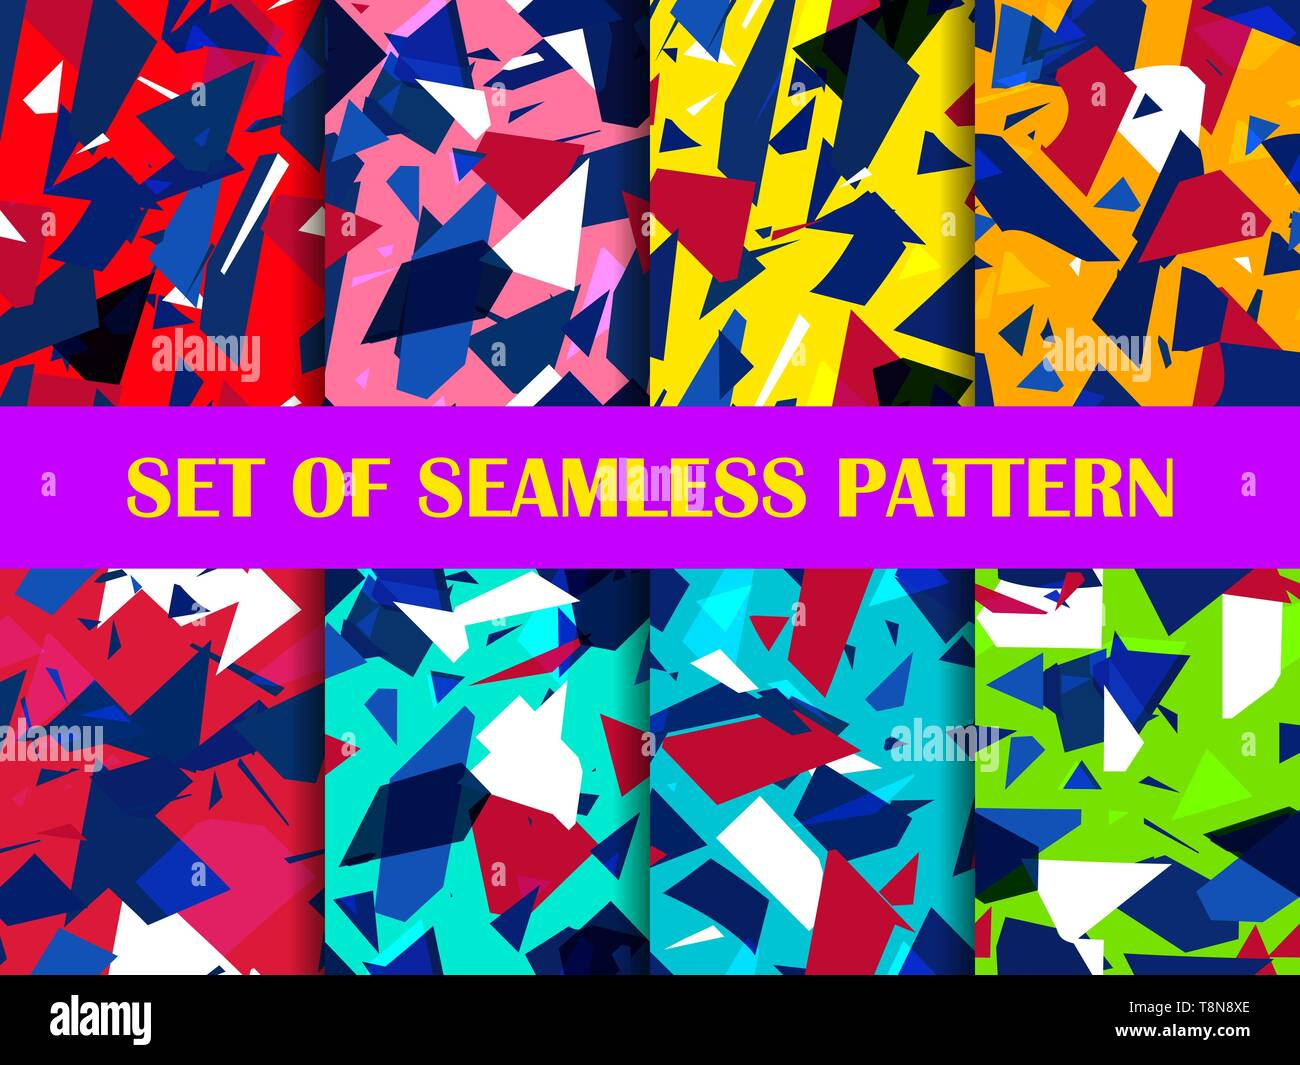 Glass explosion seamless pattern set. Broken particles. Colorful scatters of particles. Geometric shapes. Vector illustration - Stock Vector